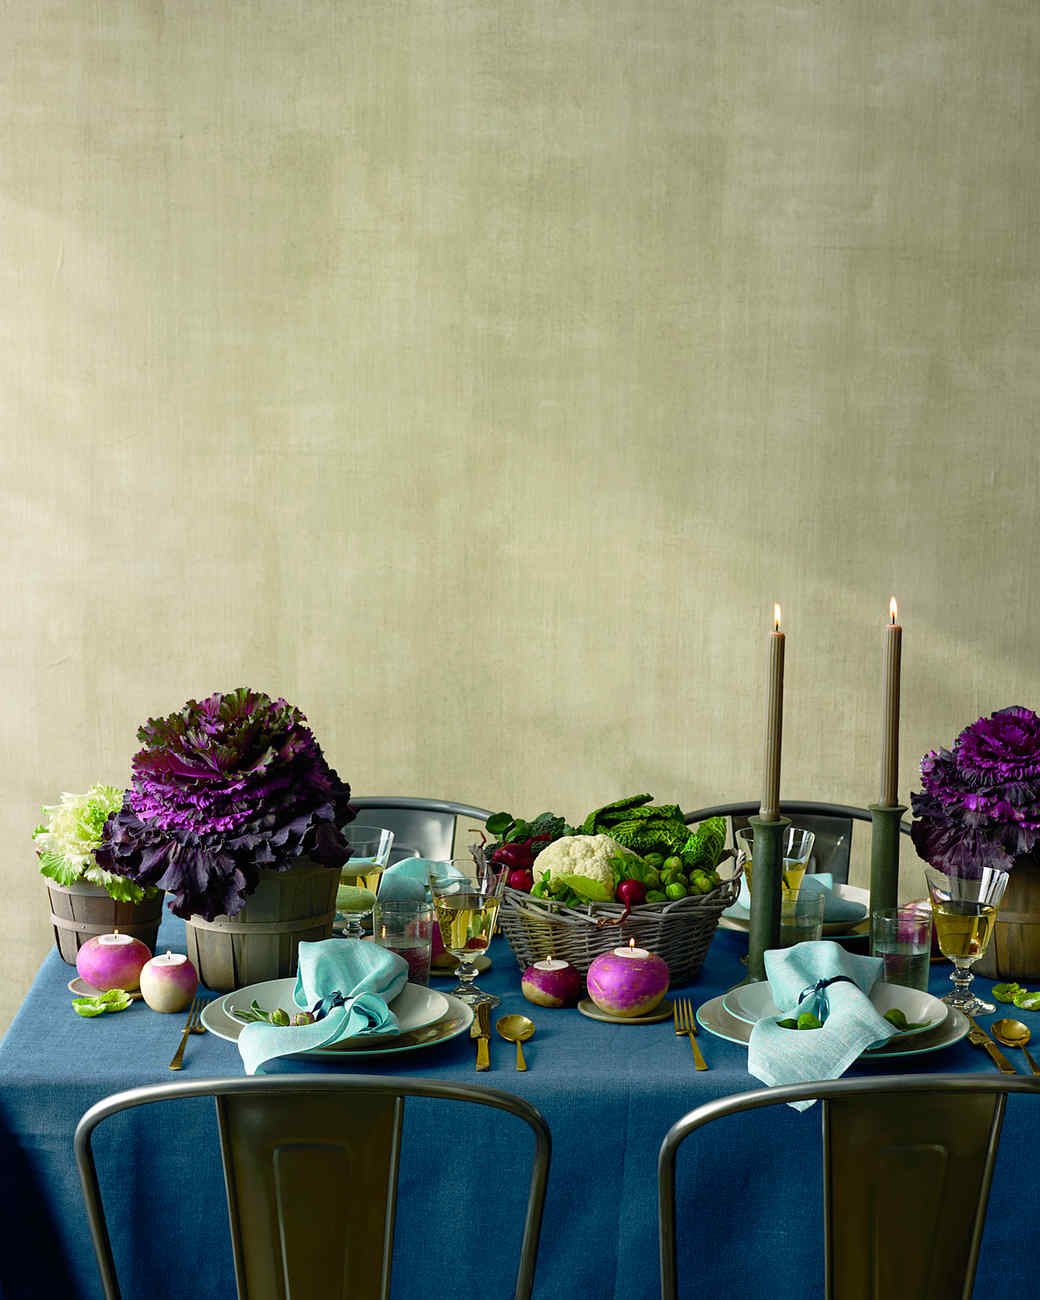 & 40 Thanksgiving Table Settings to Wow Your Guests